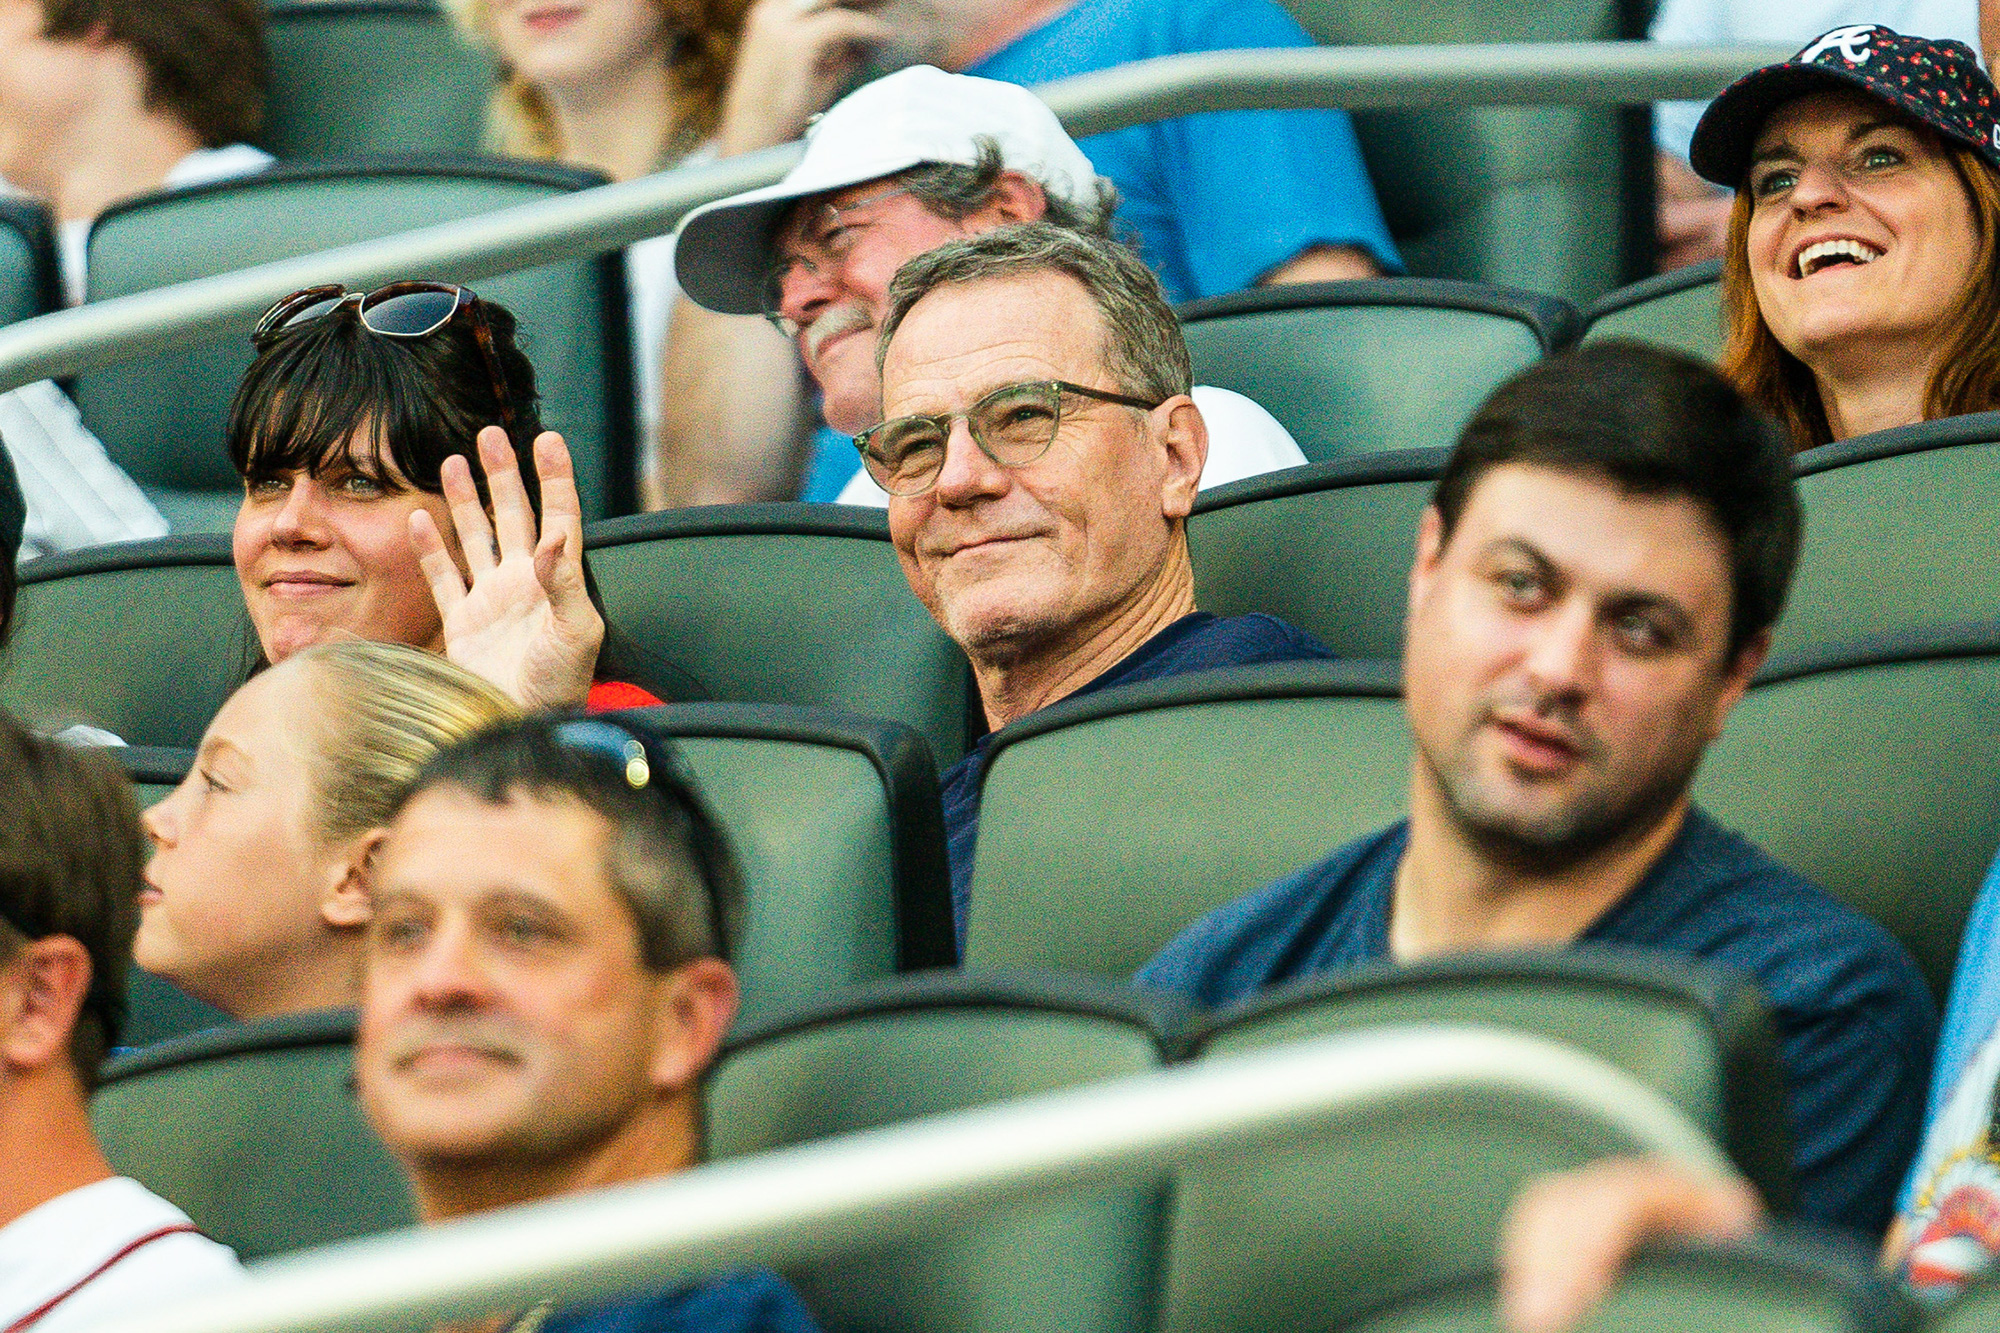 Bryan Cranston cheers on the Atlanta Braves during Game 1 against the New York Yankees at Truist Park on Monday, August 23, 2021.